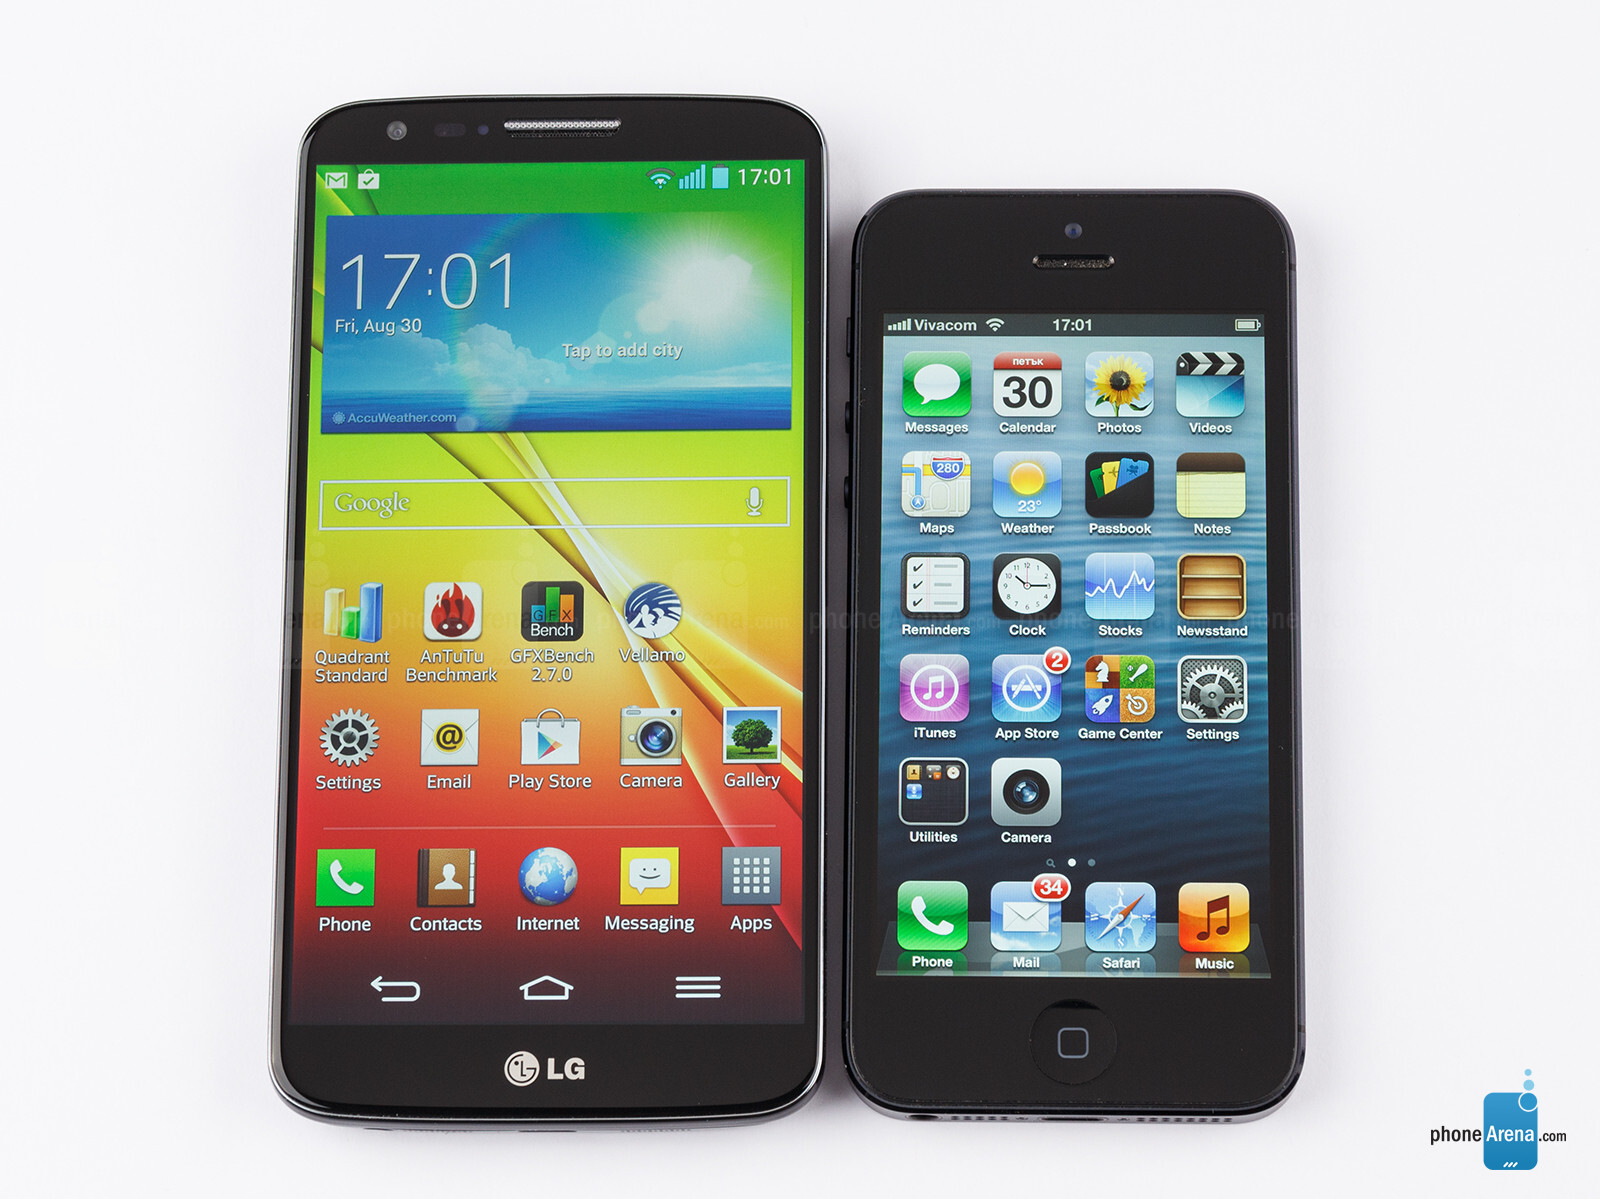 lg g2 vs apple iphone 5. Black Bedroom Furniture Sets. Home Design Ideas